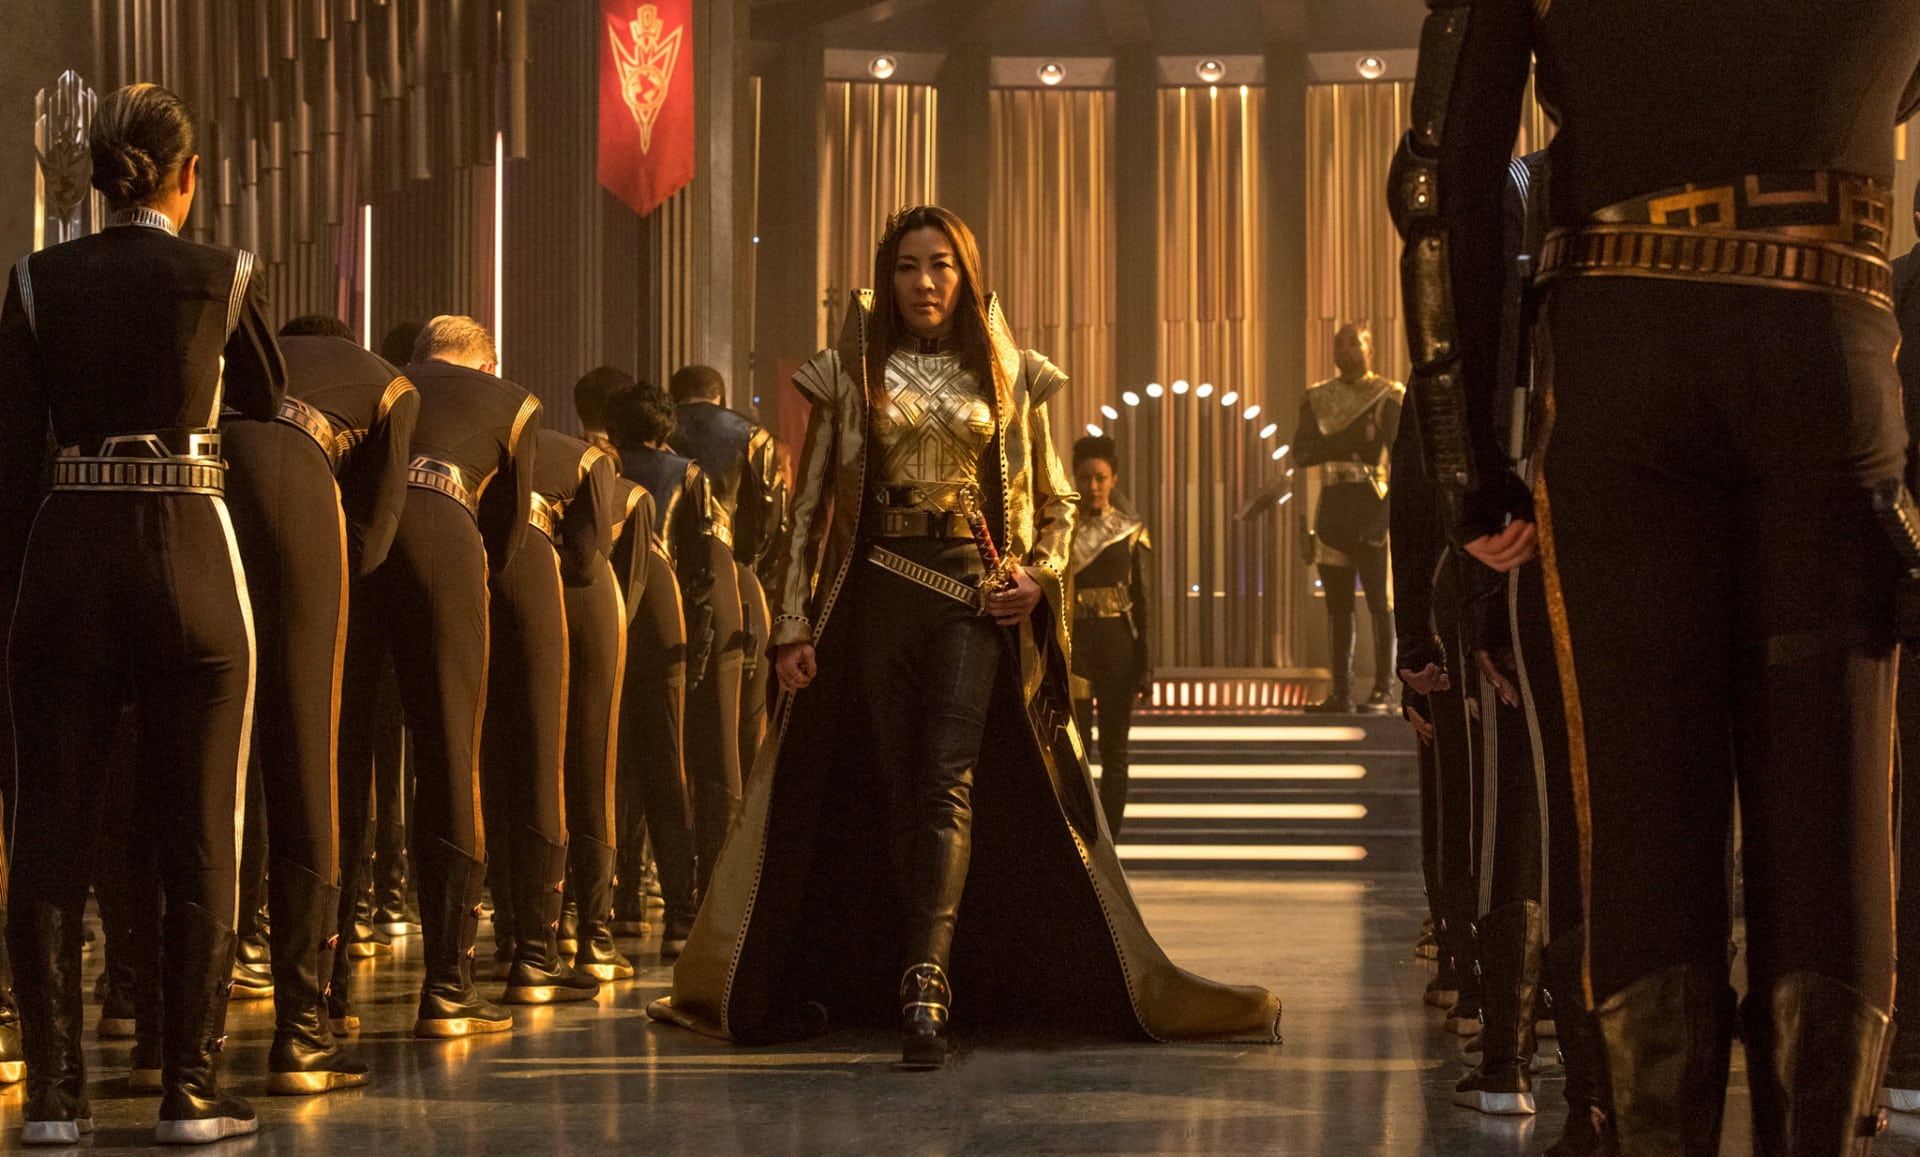 Star Trek: Discovery season 1 psychedelic roots of the franchise CBS All Access